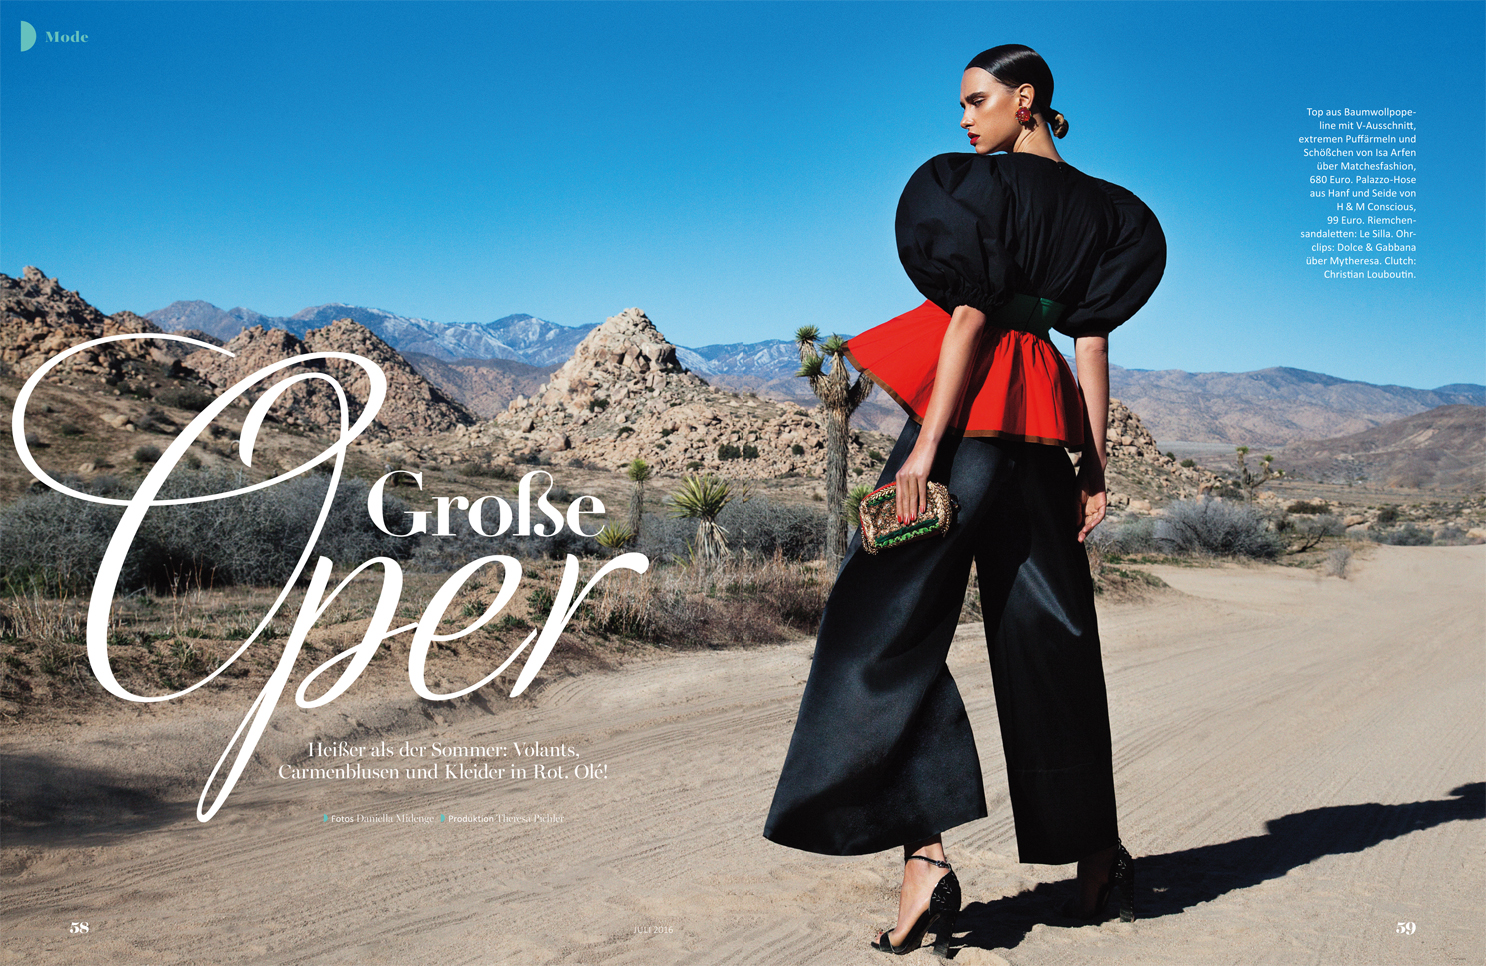 desert model senorita fashion look black suit sleek hair